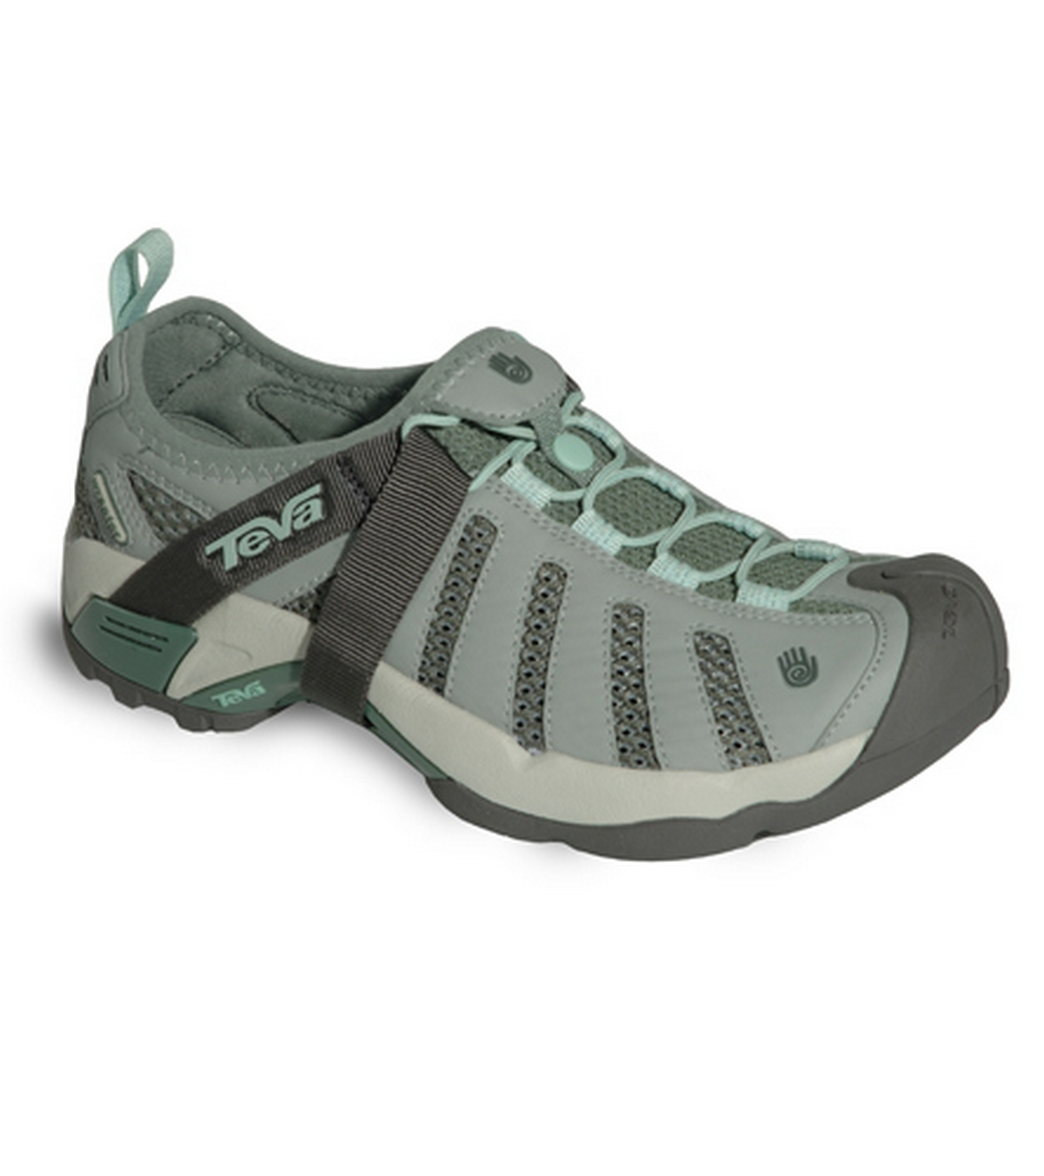 b9a7834bd2f2e Share. Share on Facebook · Tweet on Twitter · Pin on Pinterest. Visit  Product Page close X. Teva Women s Sunkosi Water Shoes